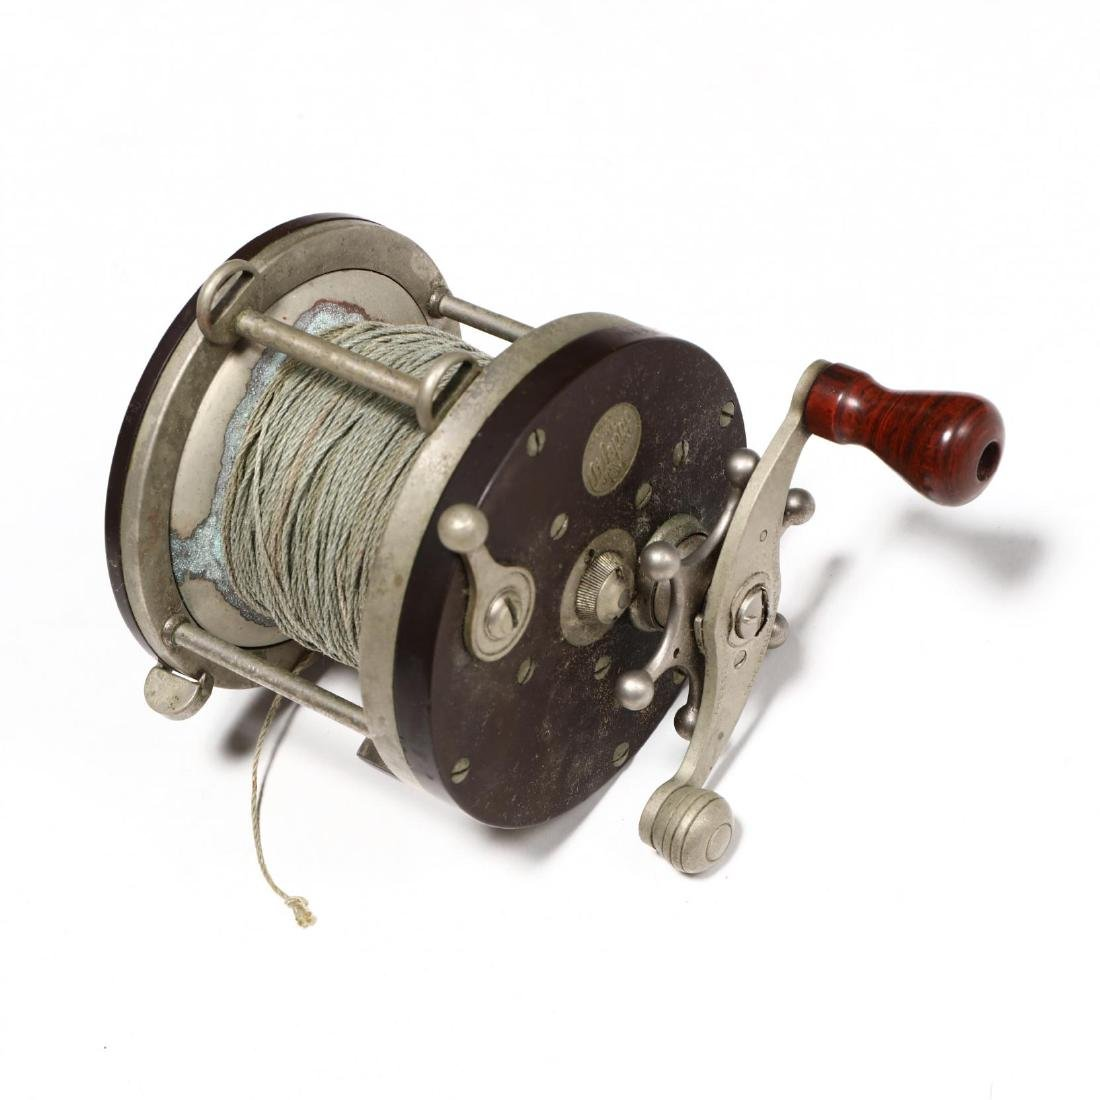 Vintage Fly Fishing Group - 3